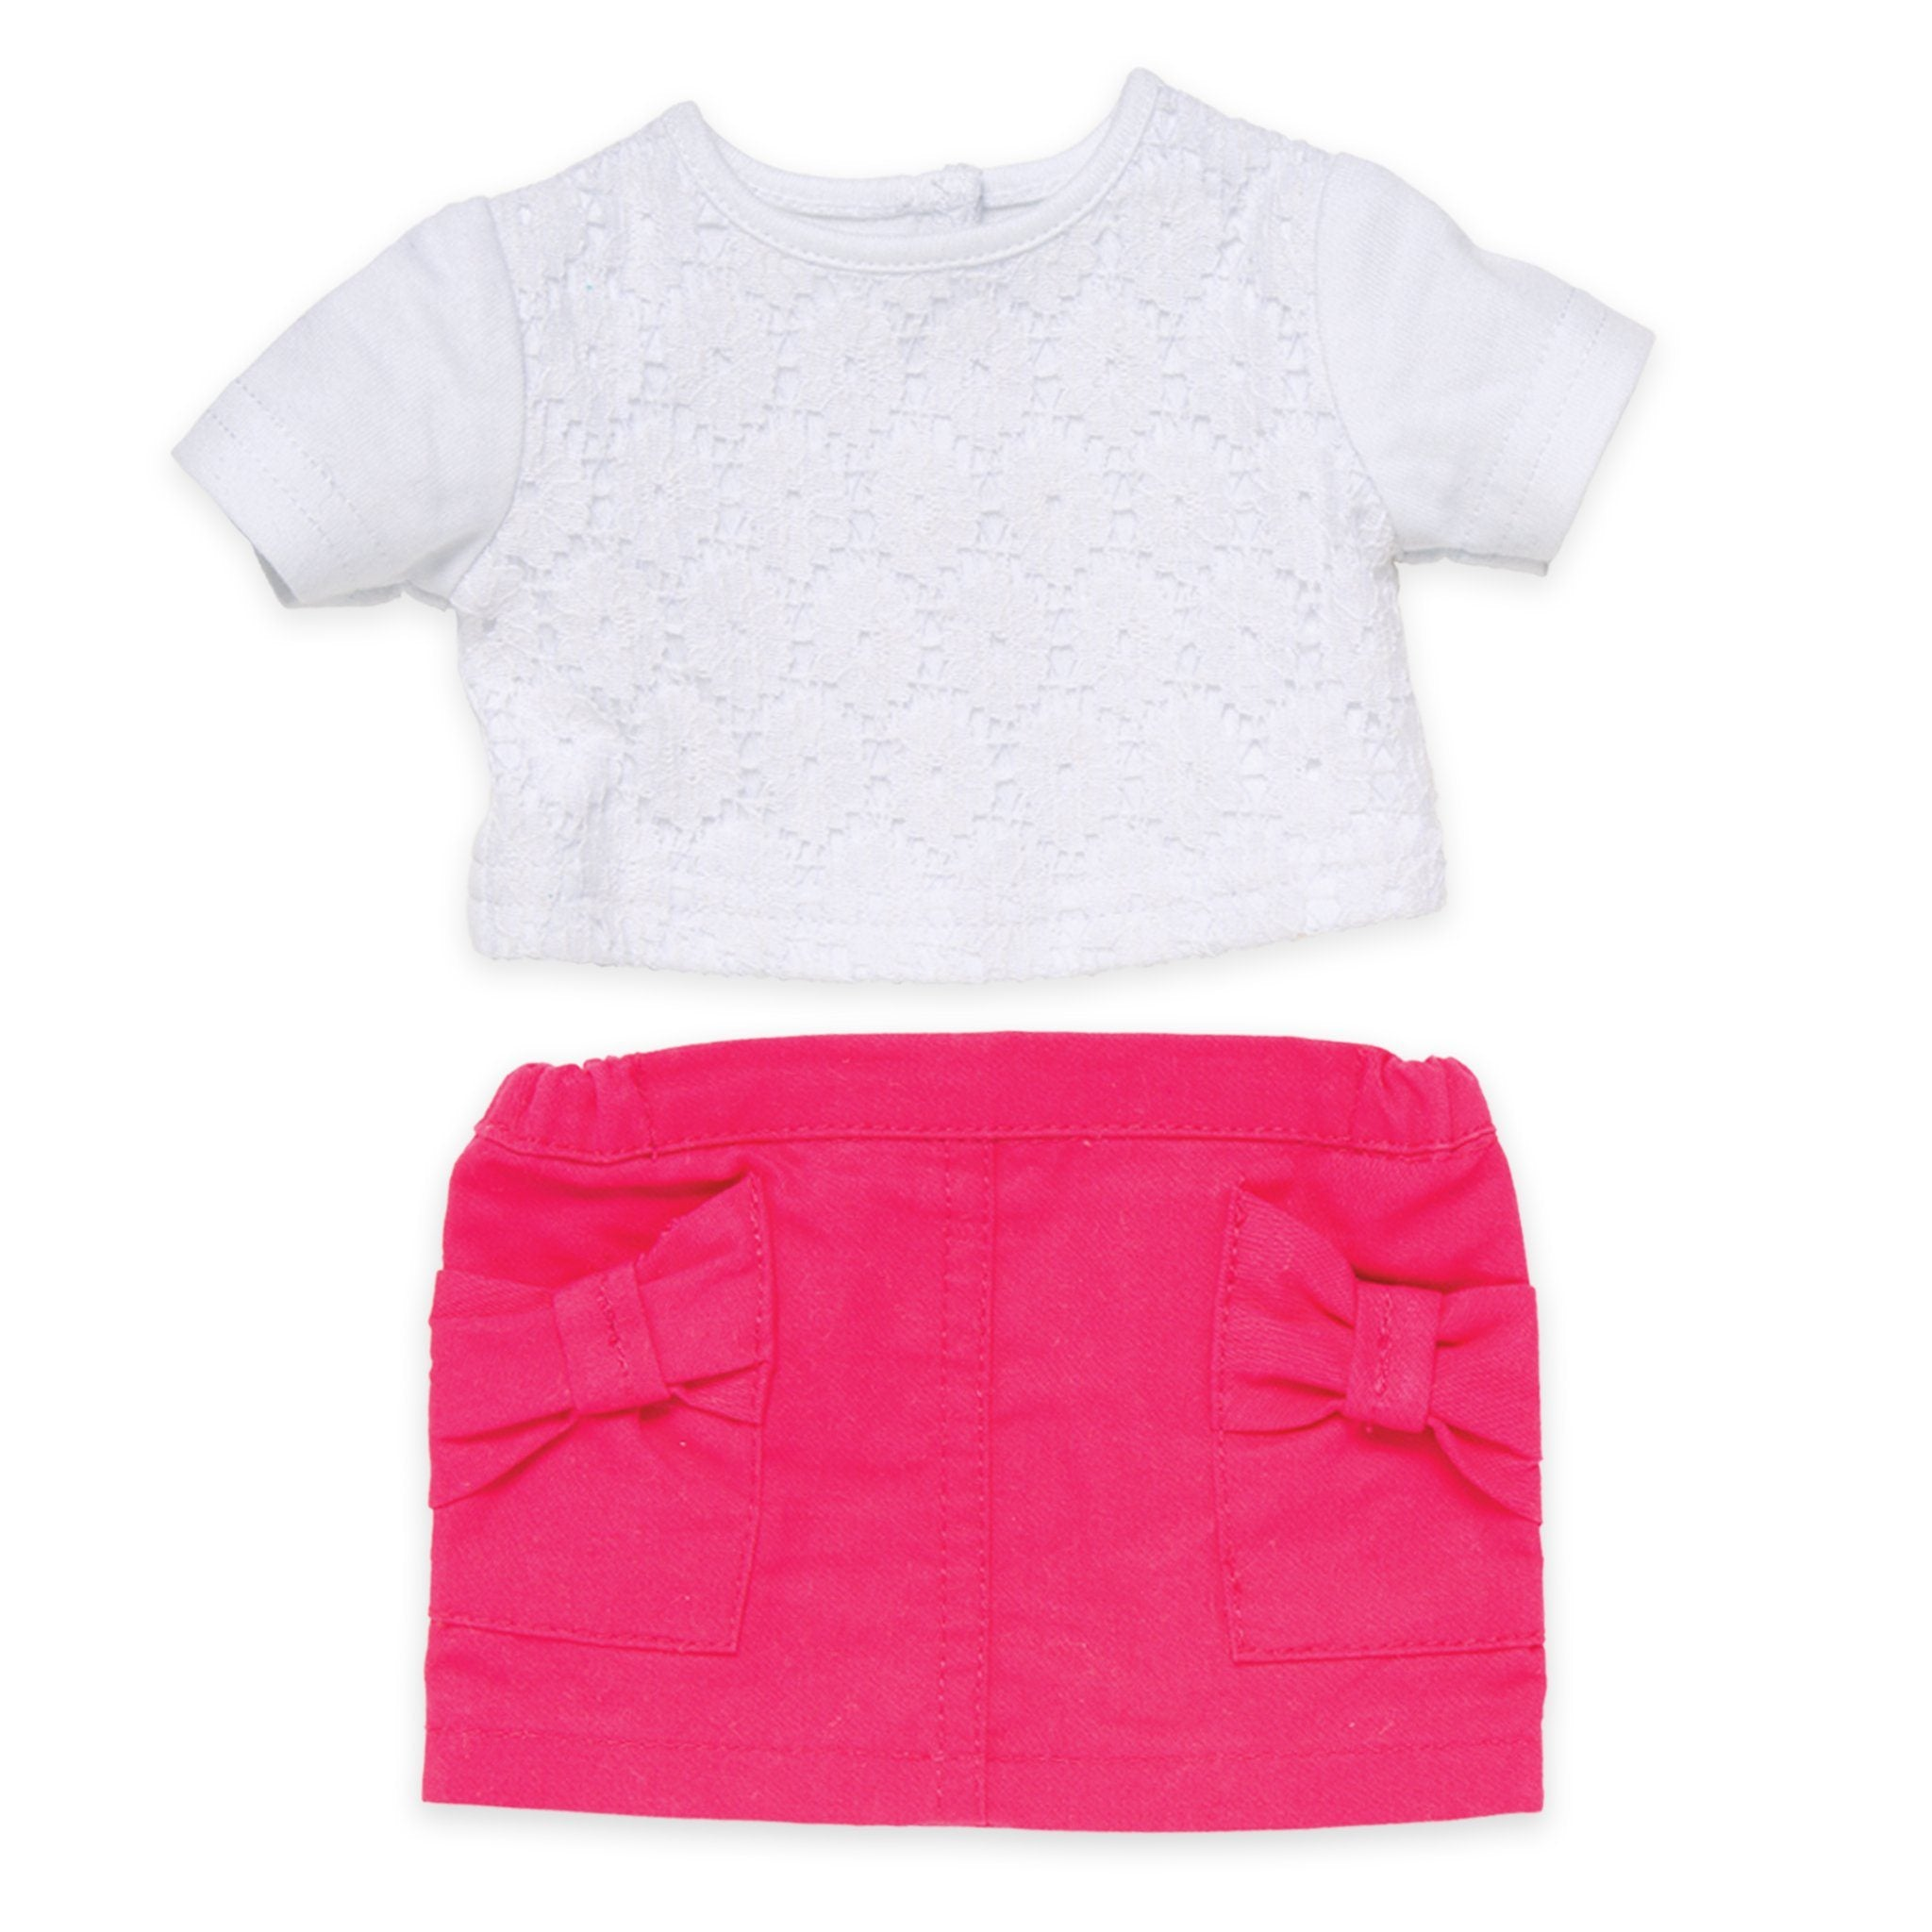 Fuchsia skirt with bow pockets lace t-shirt fits all 18 inch dolls.